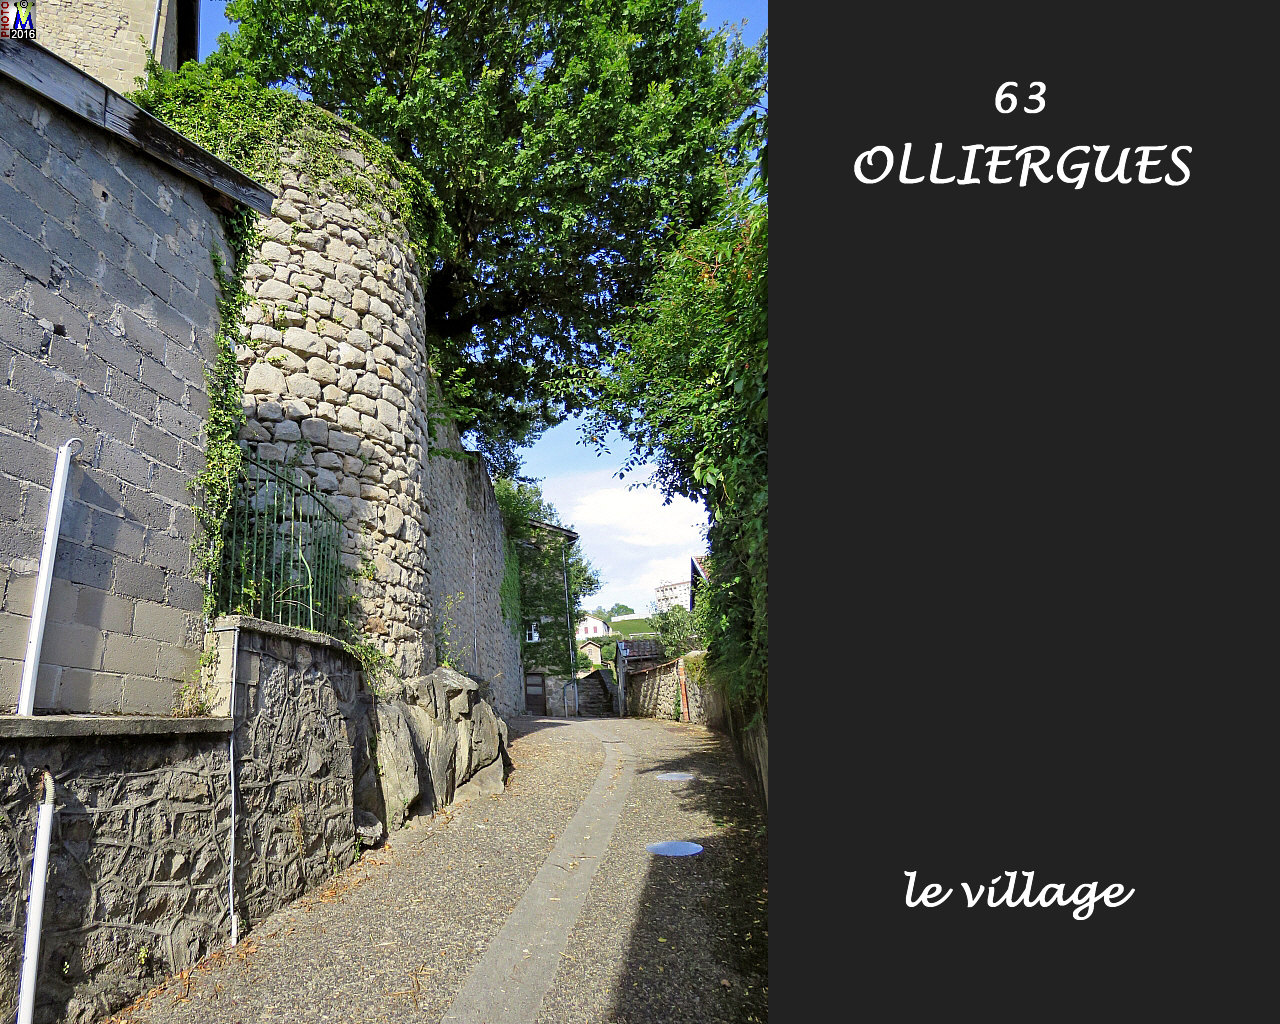 63OLLIERGUES_village_134.jpg